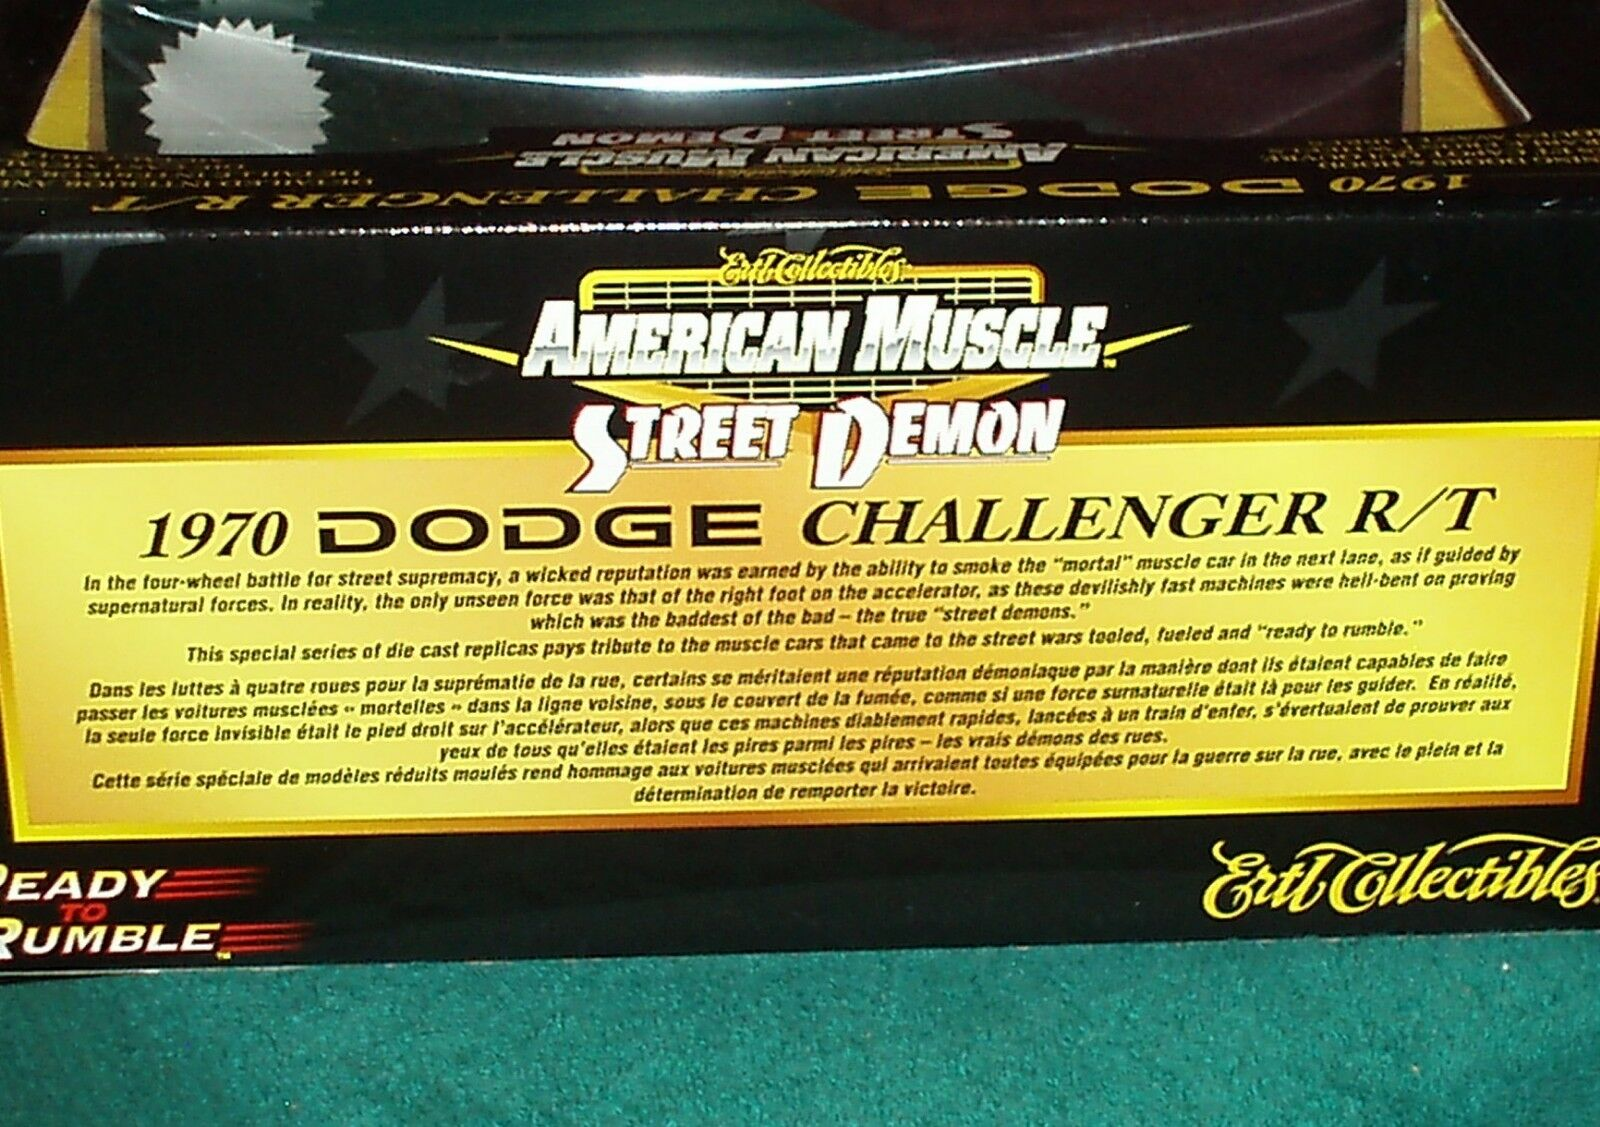 ERTL 1970 DODGE CHALLENGER R T COUPE COUPE COUPE 1 18  STREET DEMON  2003 RELEASE b4bf44